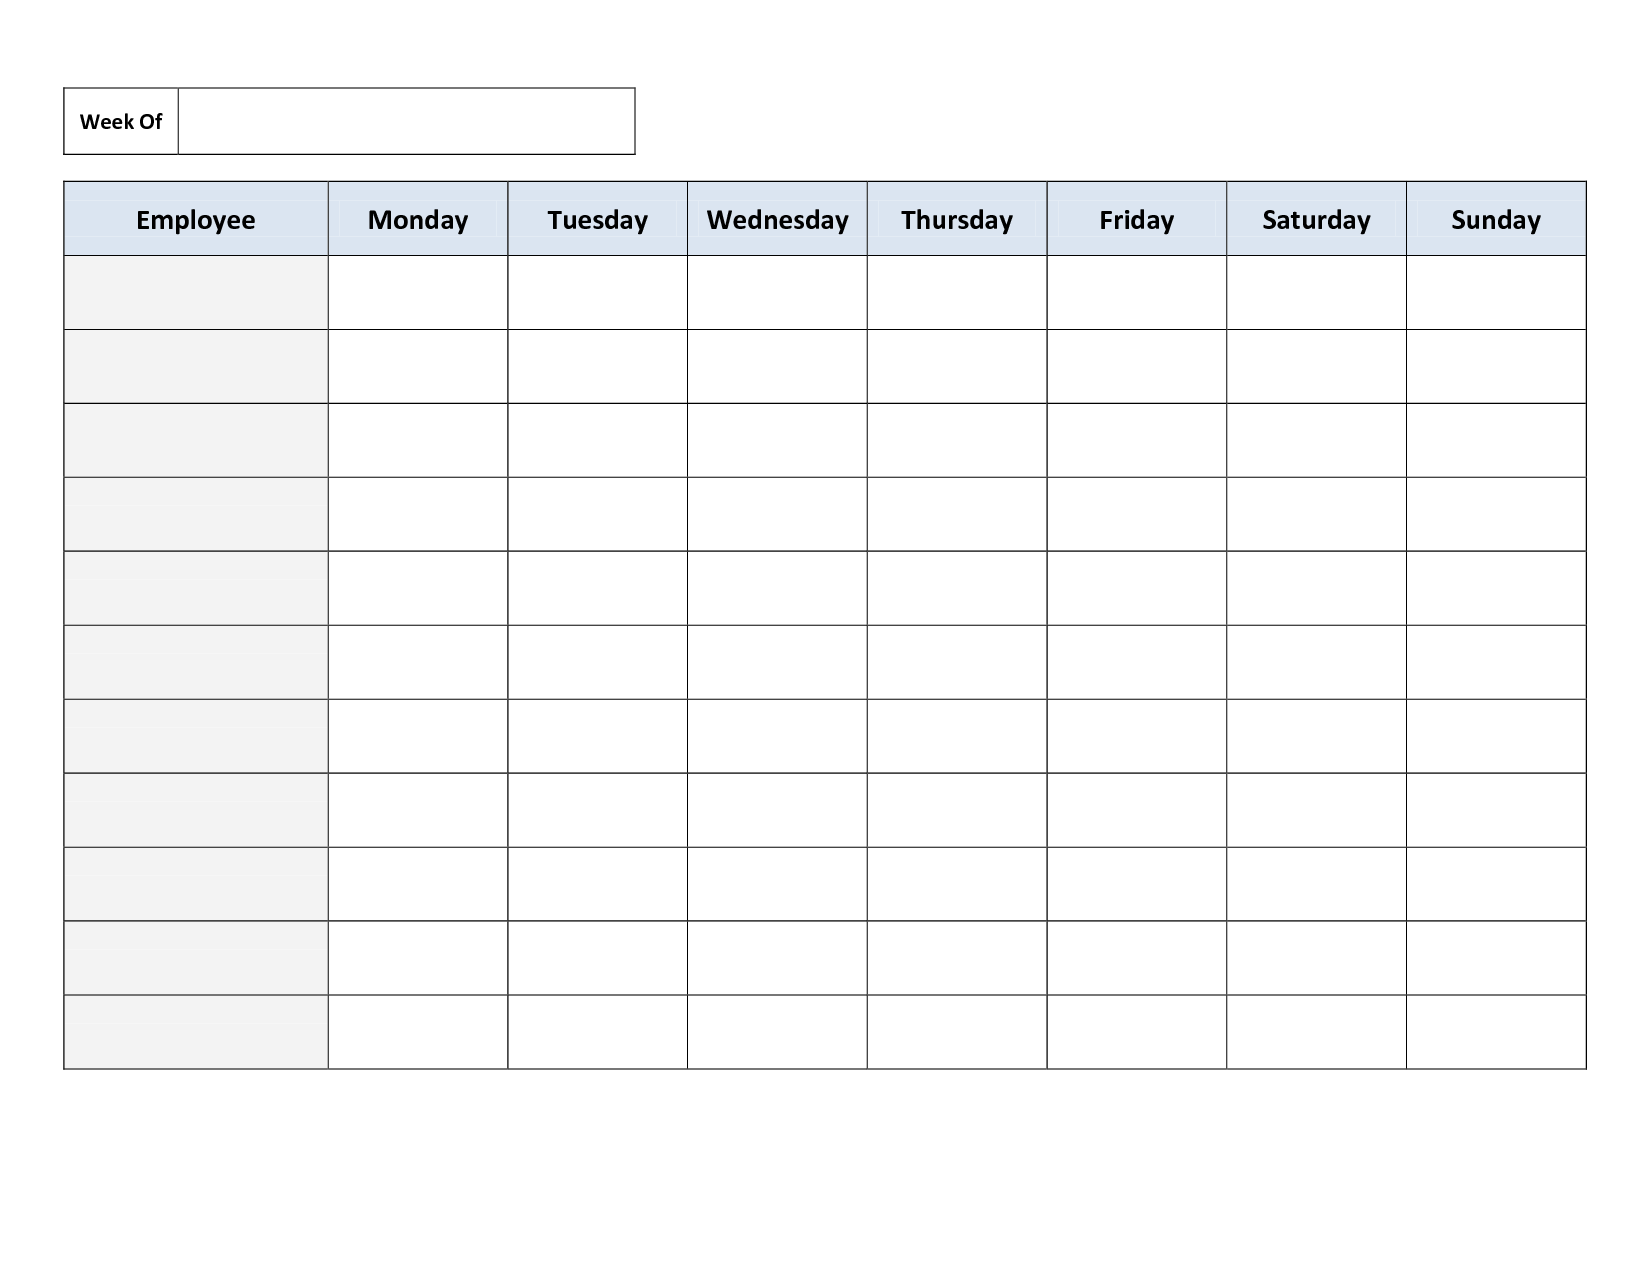 employee work schedule template   Demire.agdiffusion.com